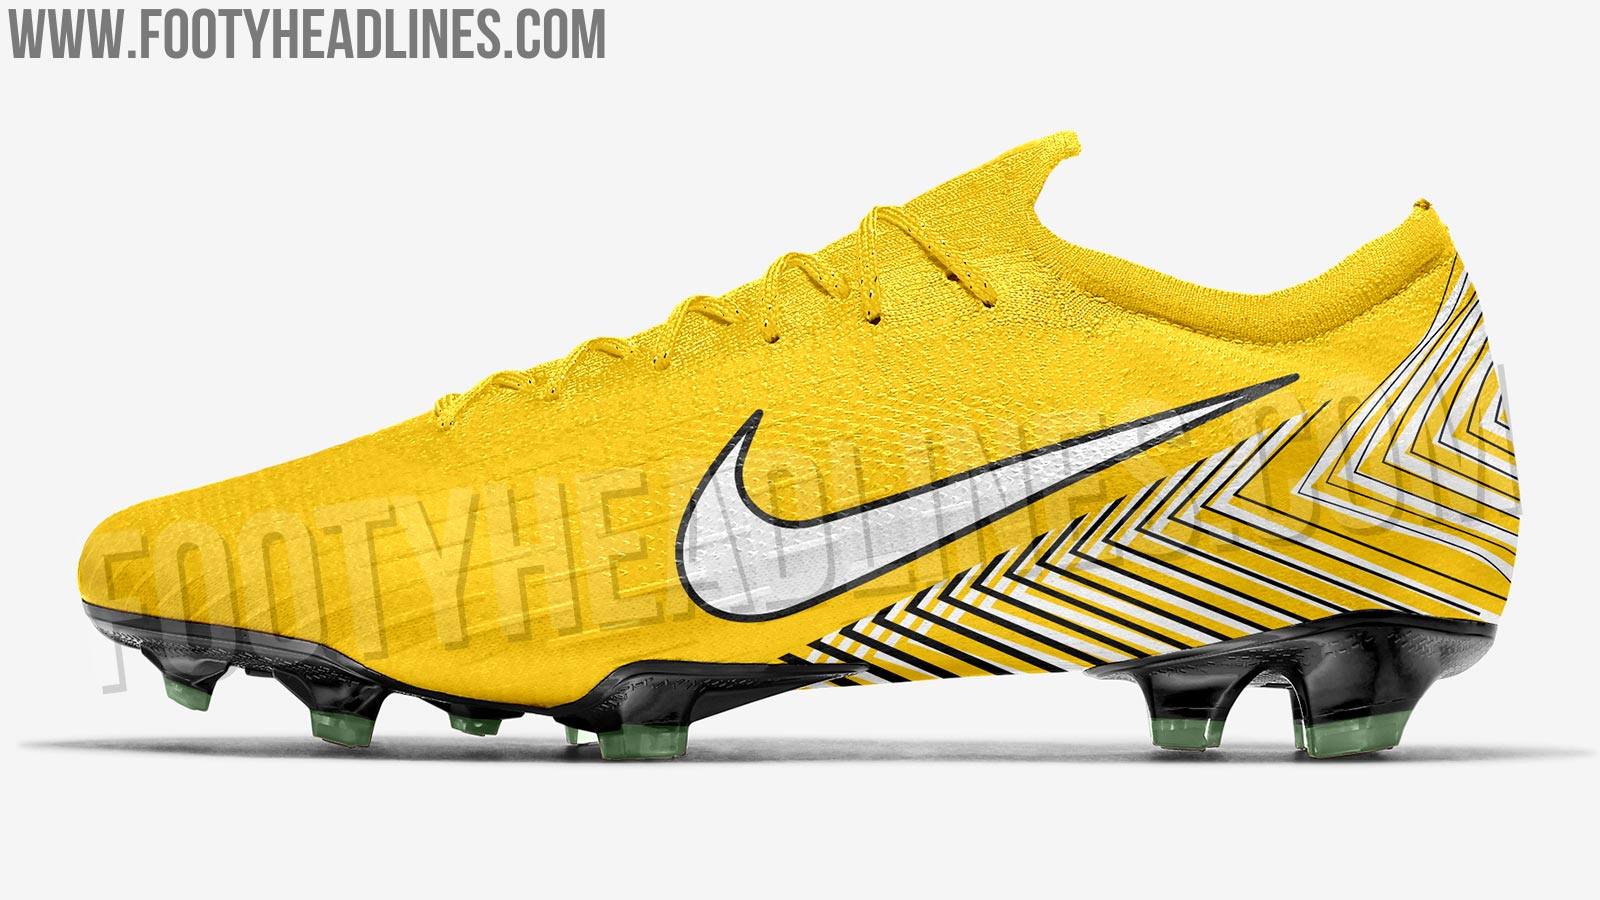 Nike Soccer Shoes Yellow